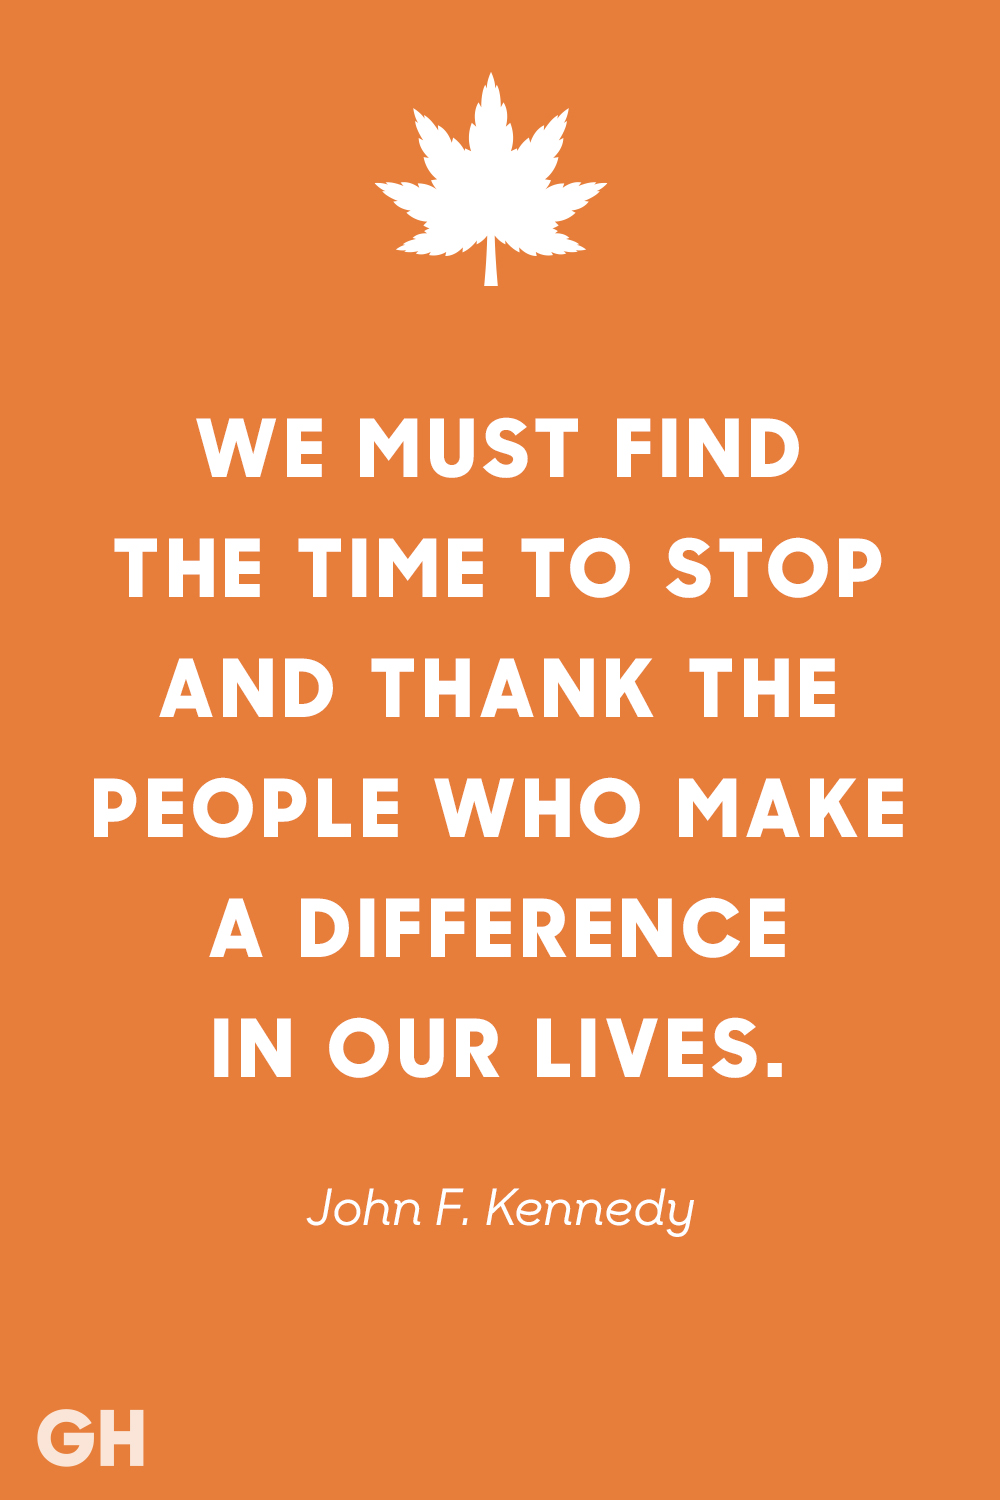 Short But Meaningful Quotes 15 Best Thanksgiving Quotes  Inspirational And Funny Quotes About